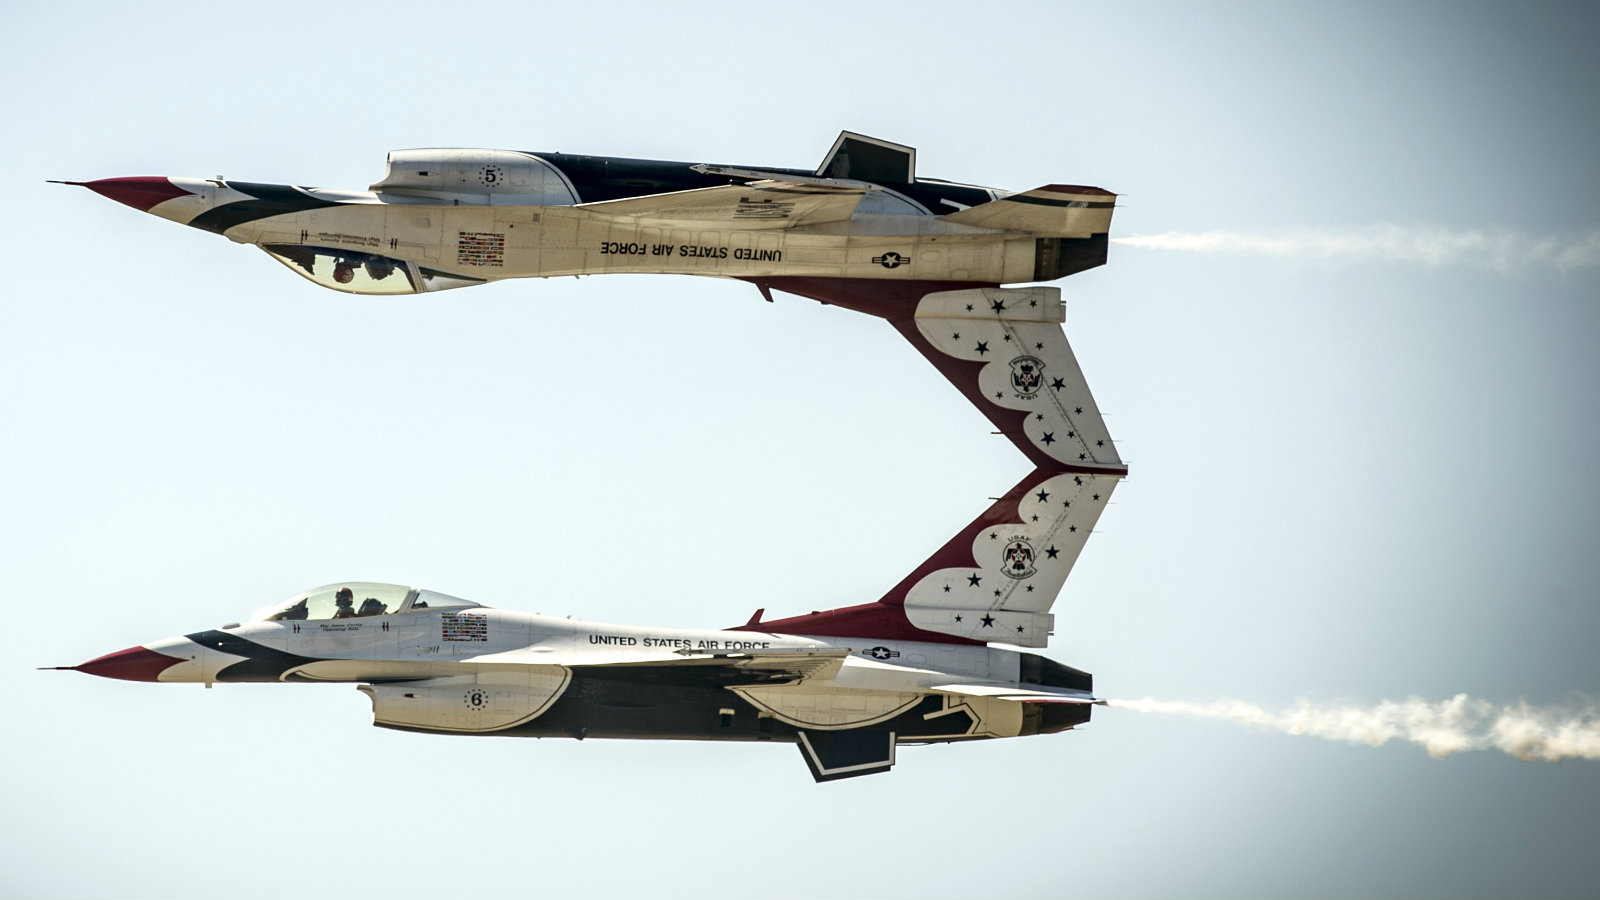 US Air Force pilots with the Thunderbirds perform the calypso pass maneuver in F-16 Fighting Falcon aircraft over the Mountain Home Air Force Base, Idaho in September 2014.